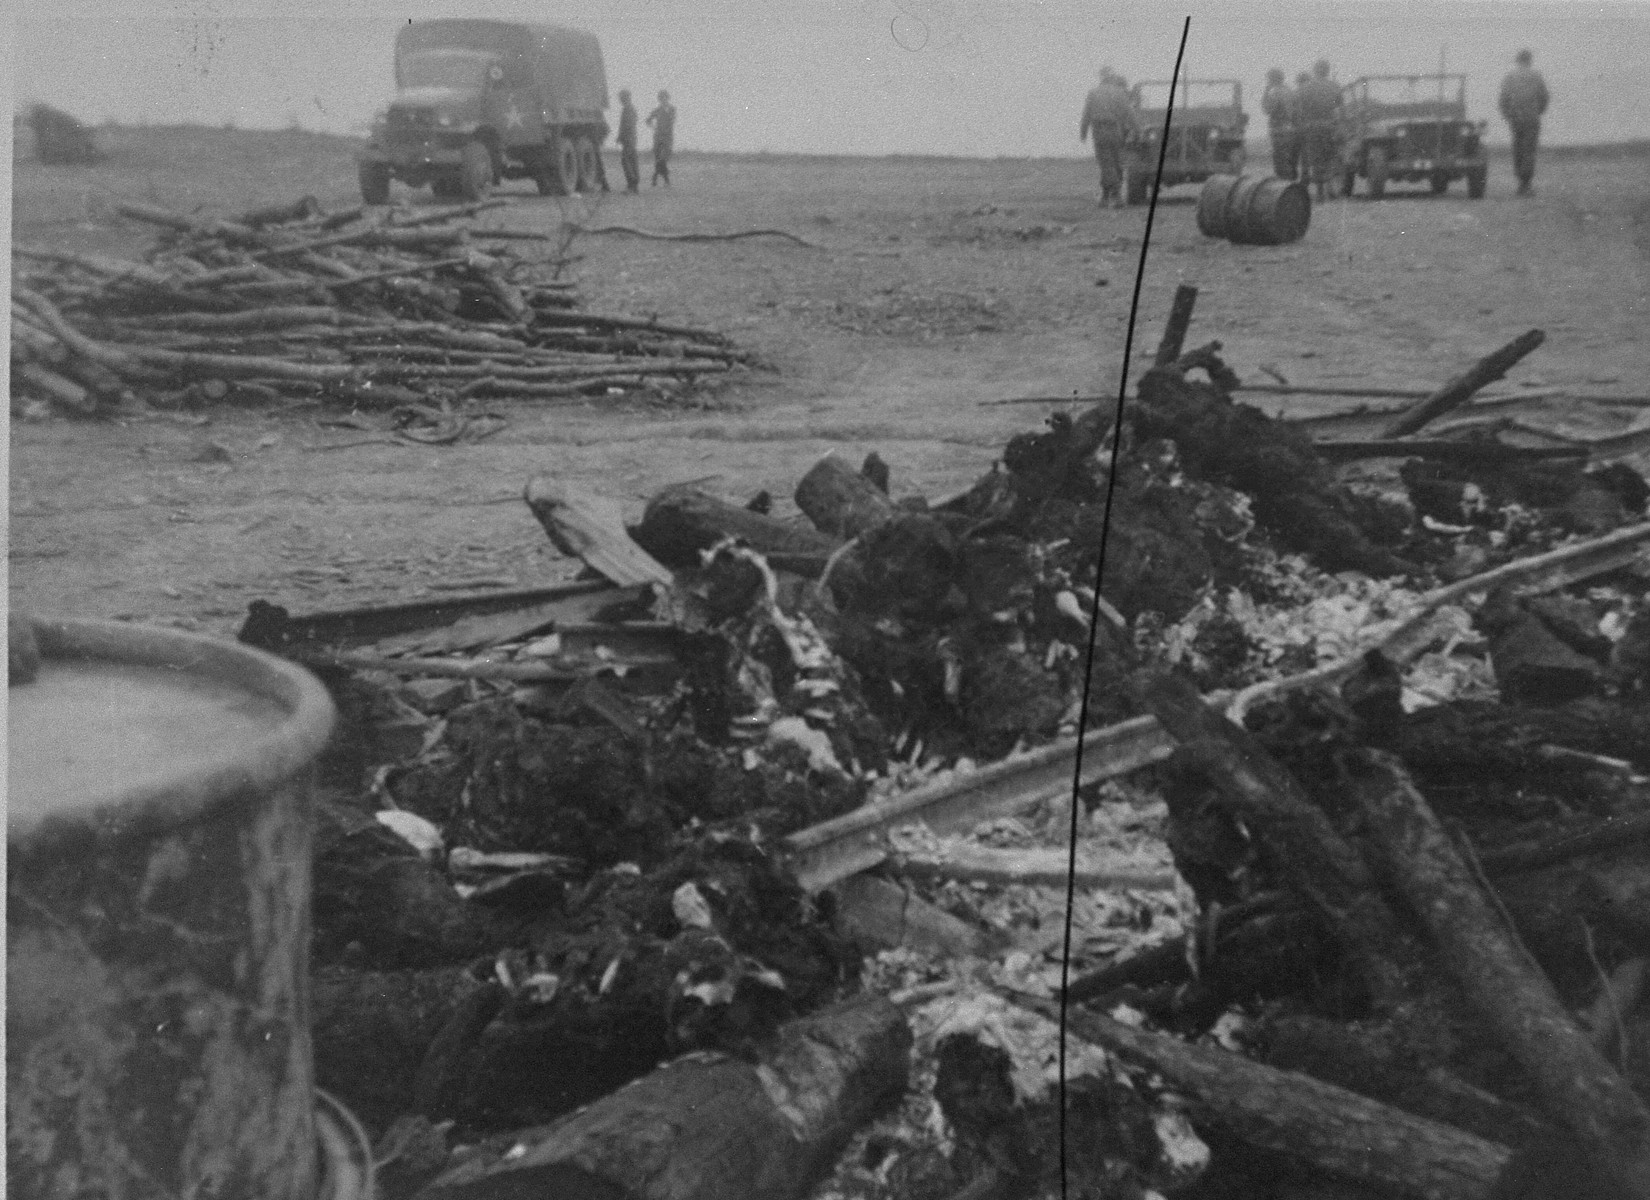 American troops and vehicles are visible behind the charred remains of prisoners' corpses, which were burned by the SS prior to evacuation of the Ohrdruf concentration camp.